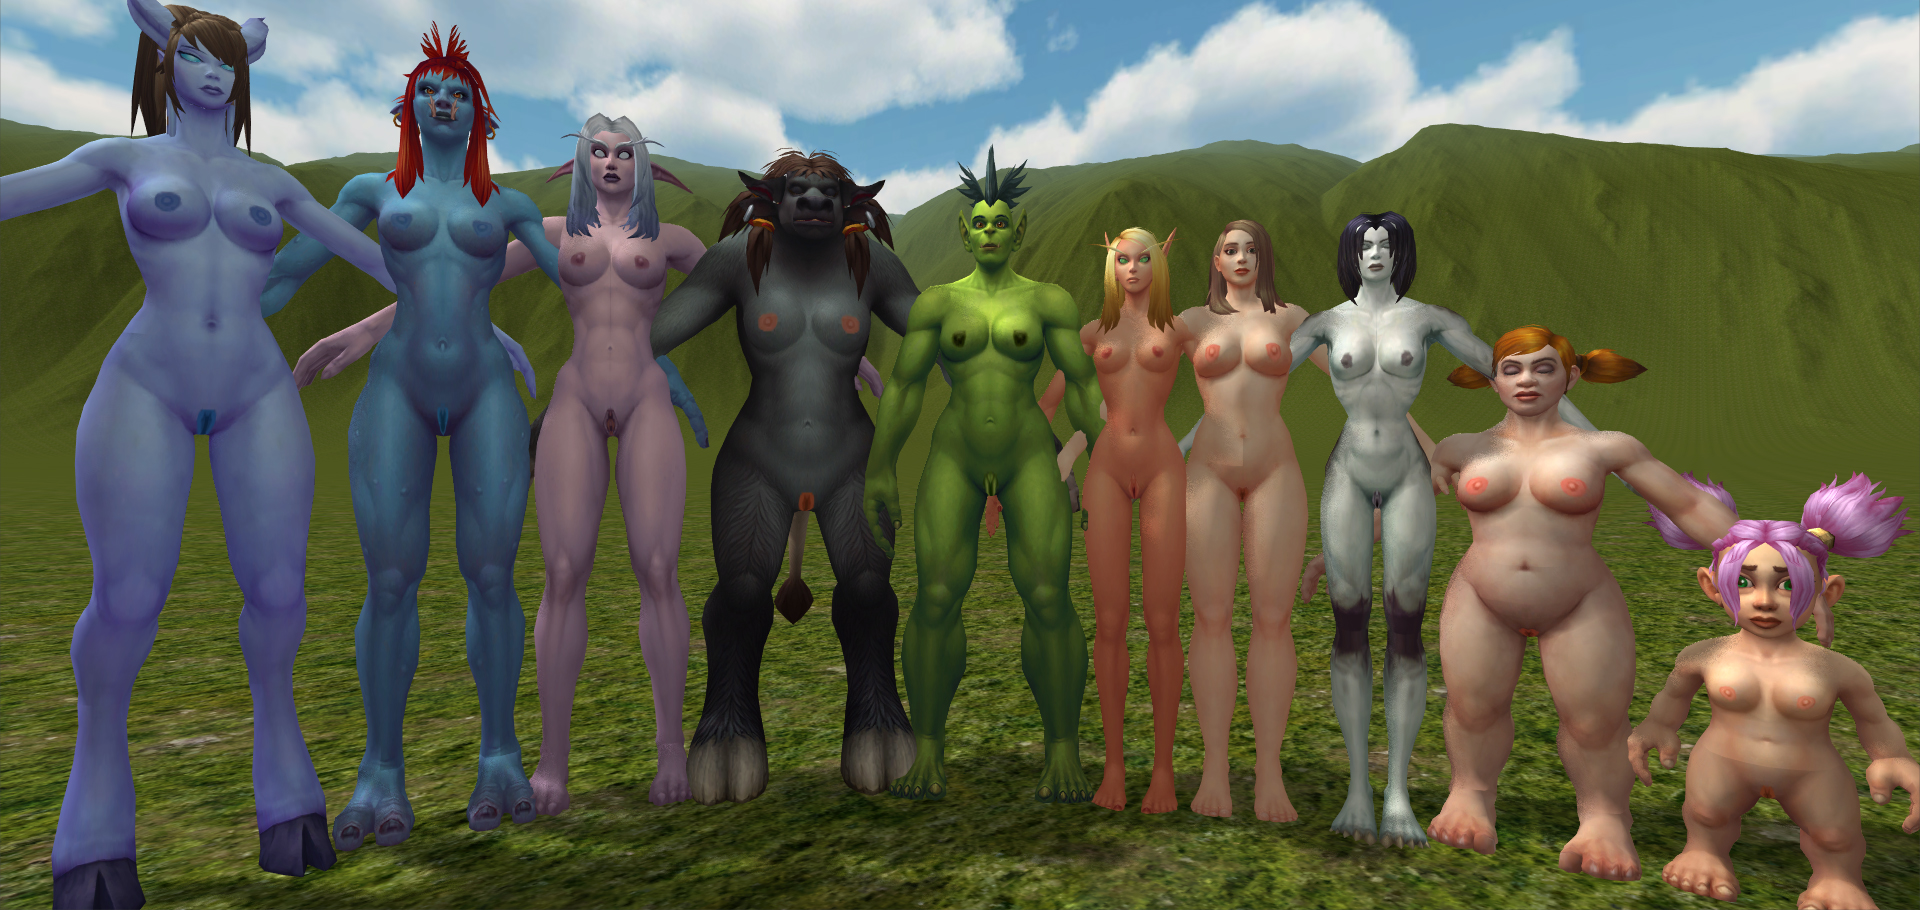 World of warcraft clothes remover nude fucks pictures